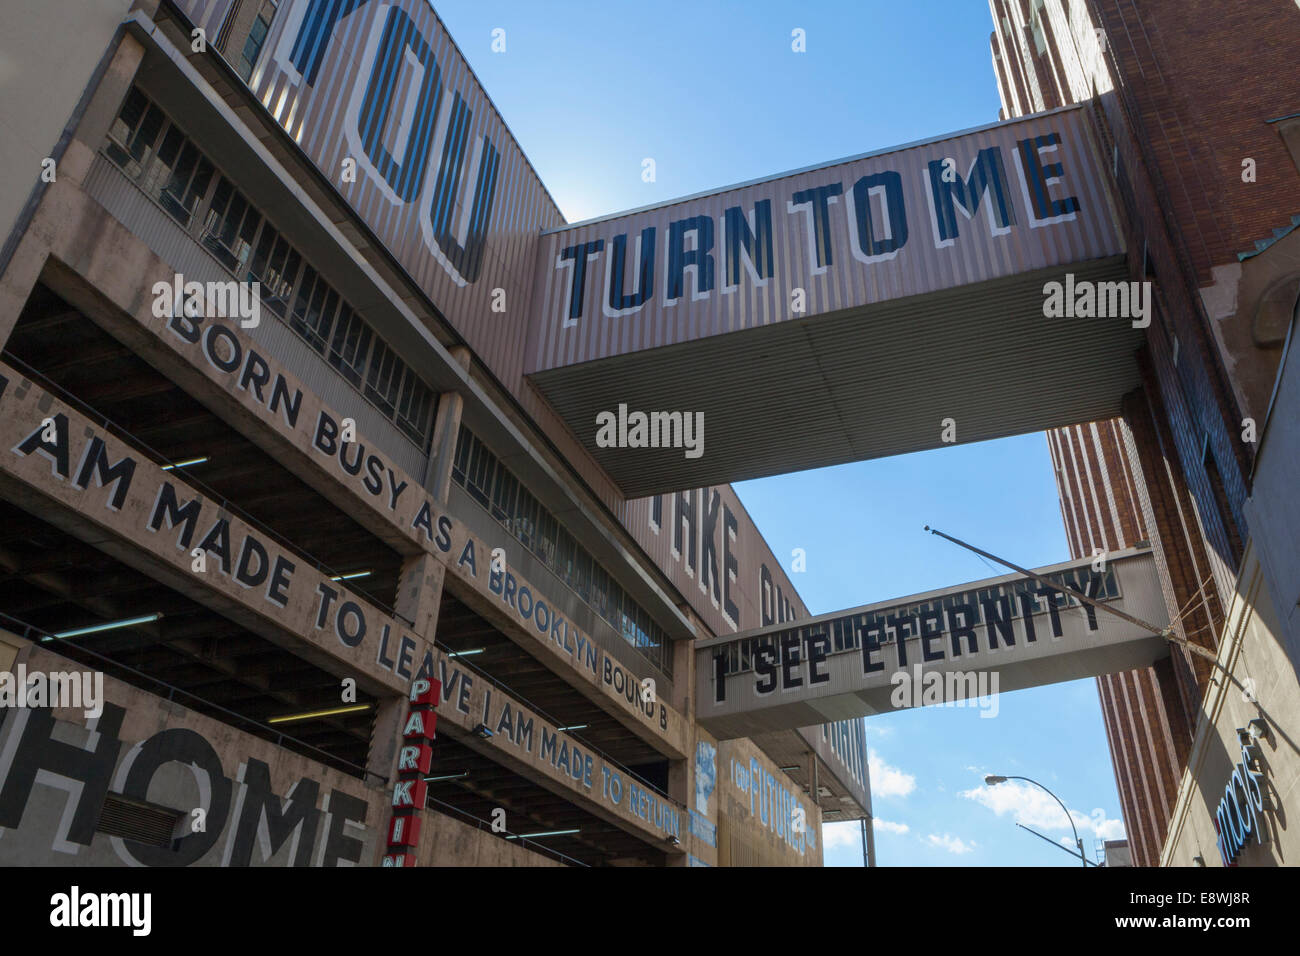 ESPO's 'Love Letter to Brooklyn' painted on Macy's Parking Garage in Hoyt Street, Brooklyn - Stock Image